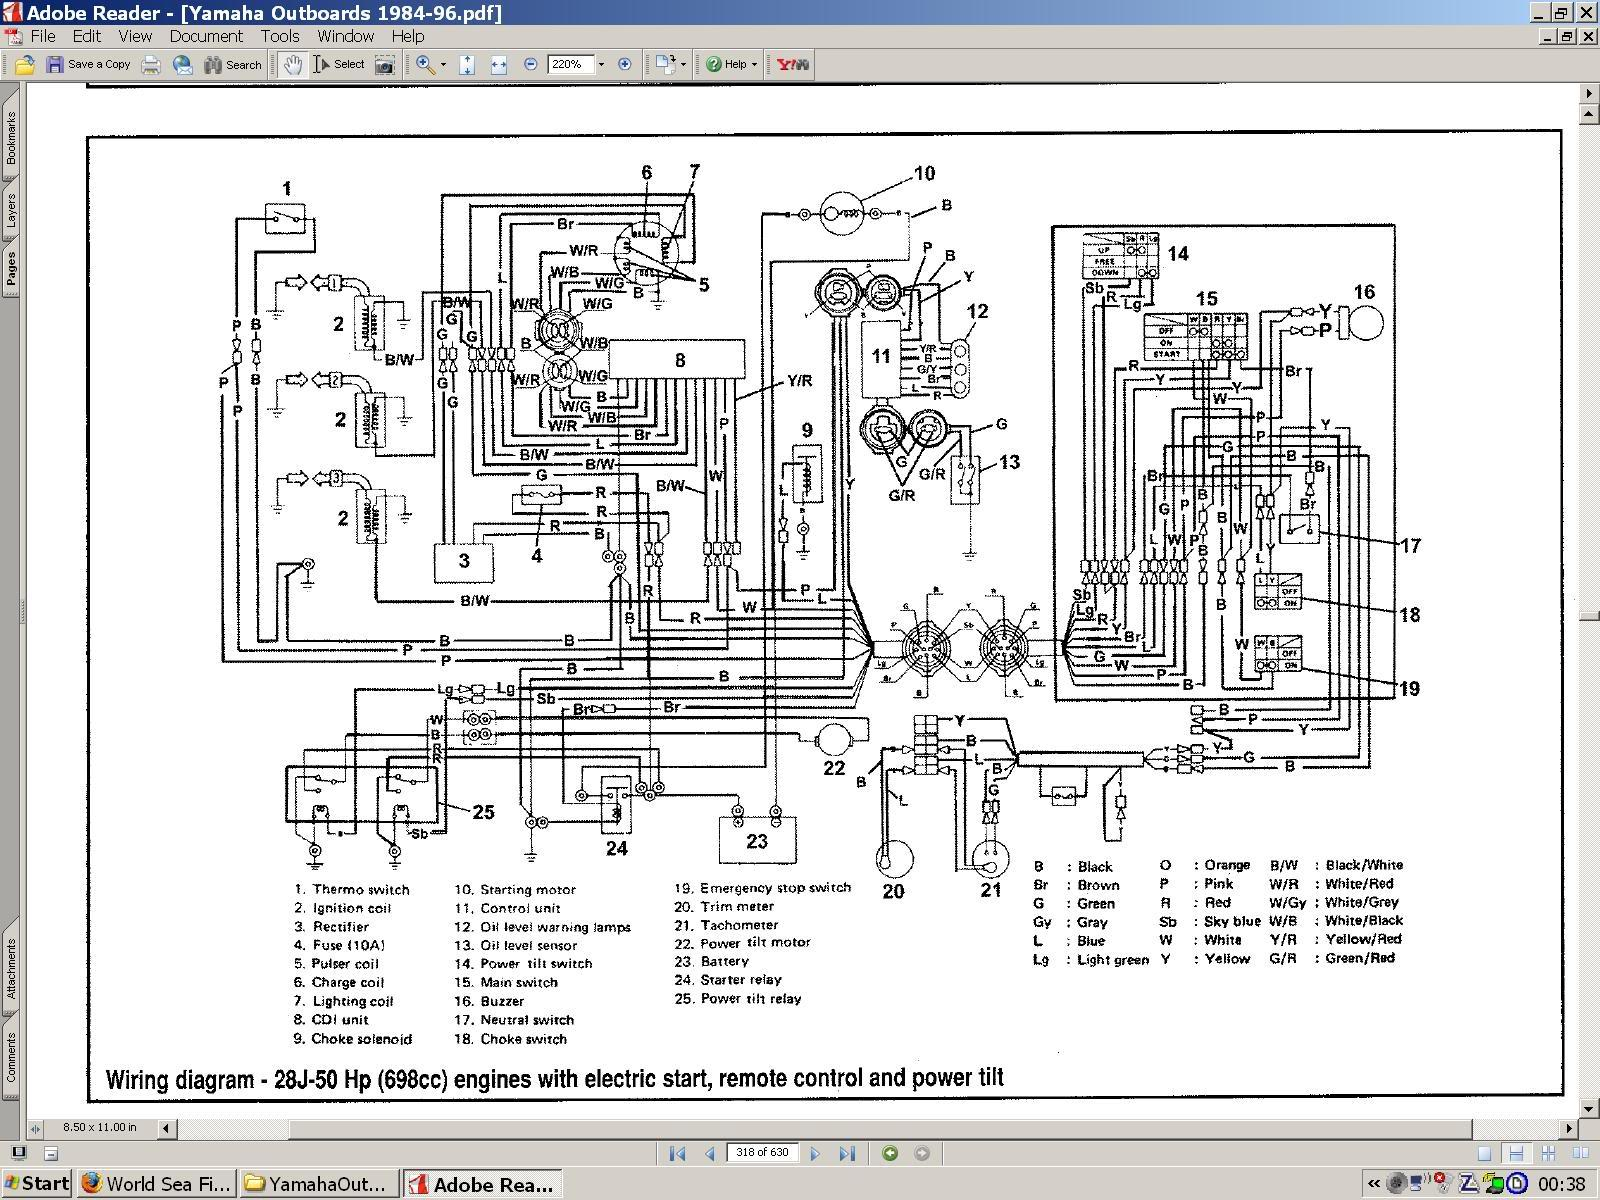 Va 0696 Yamaha Outboards Wiring Diagrams Free Download